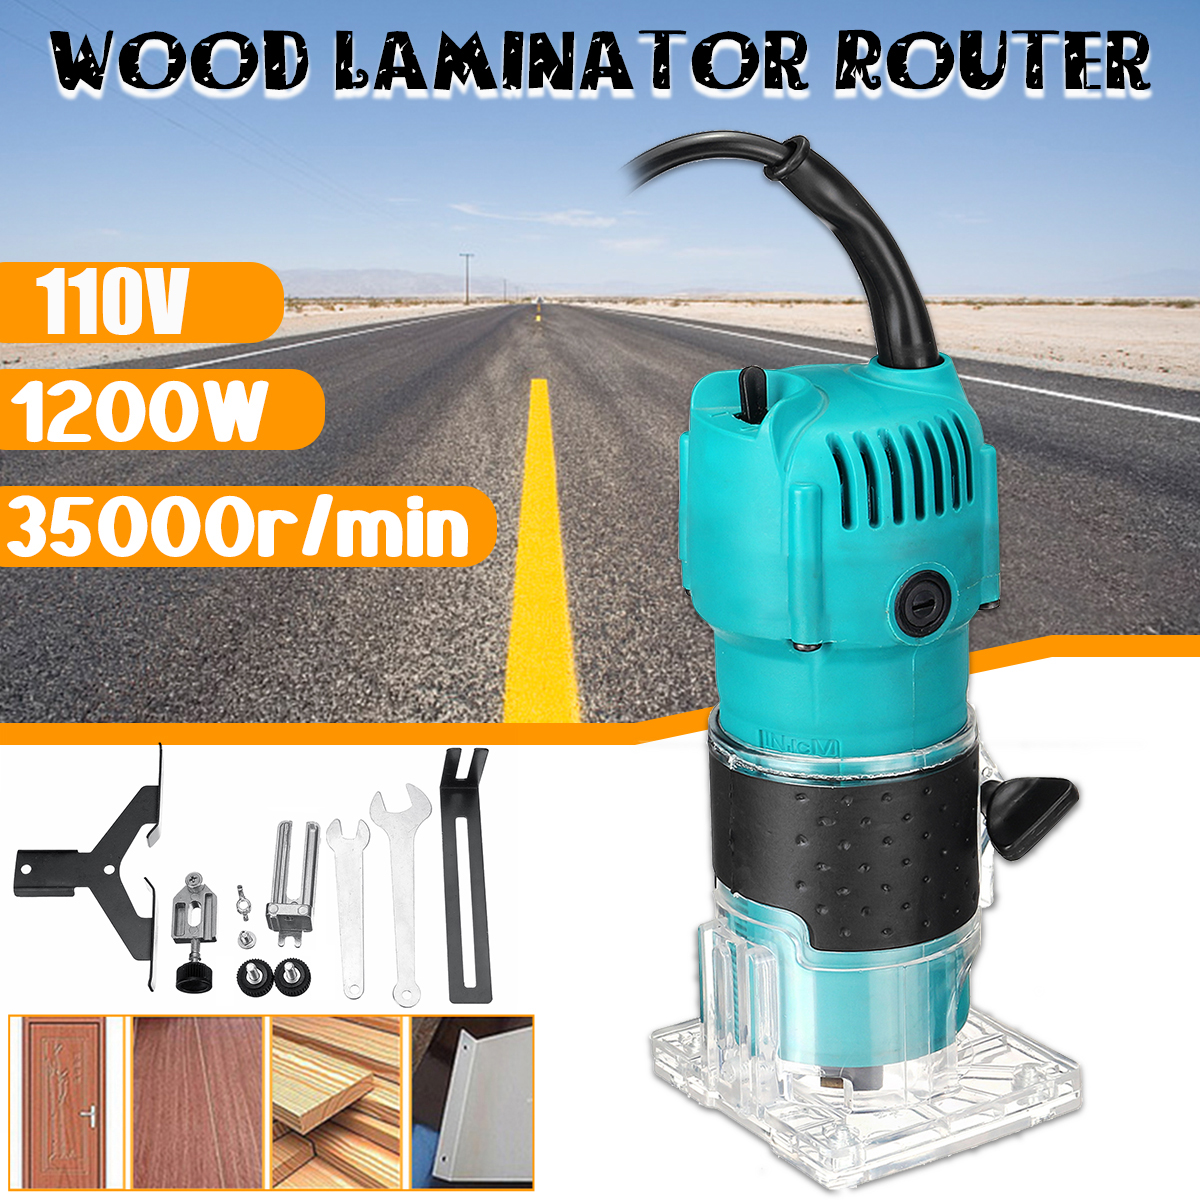 110V 1200W 1/4 Inch Carving Machine Edge Trimmer Power Tools 35000r/min Electric Hand Trimmer Wood Laminator Router Edge Joiners